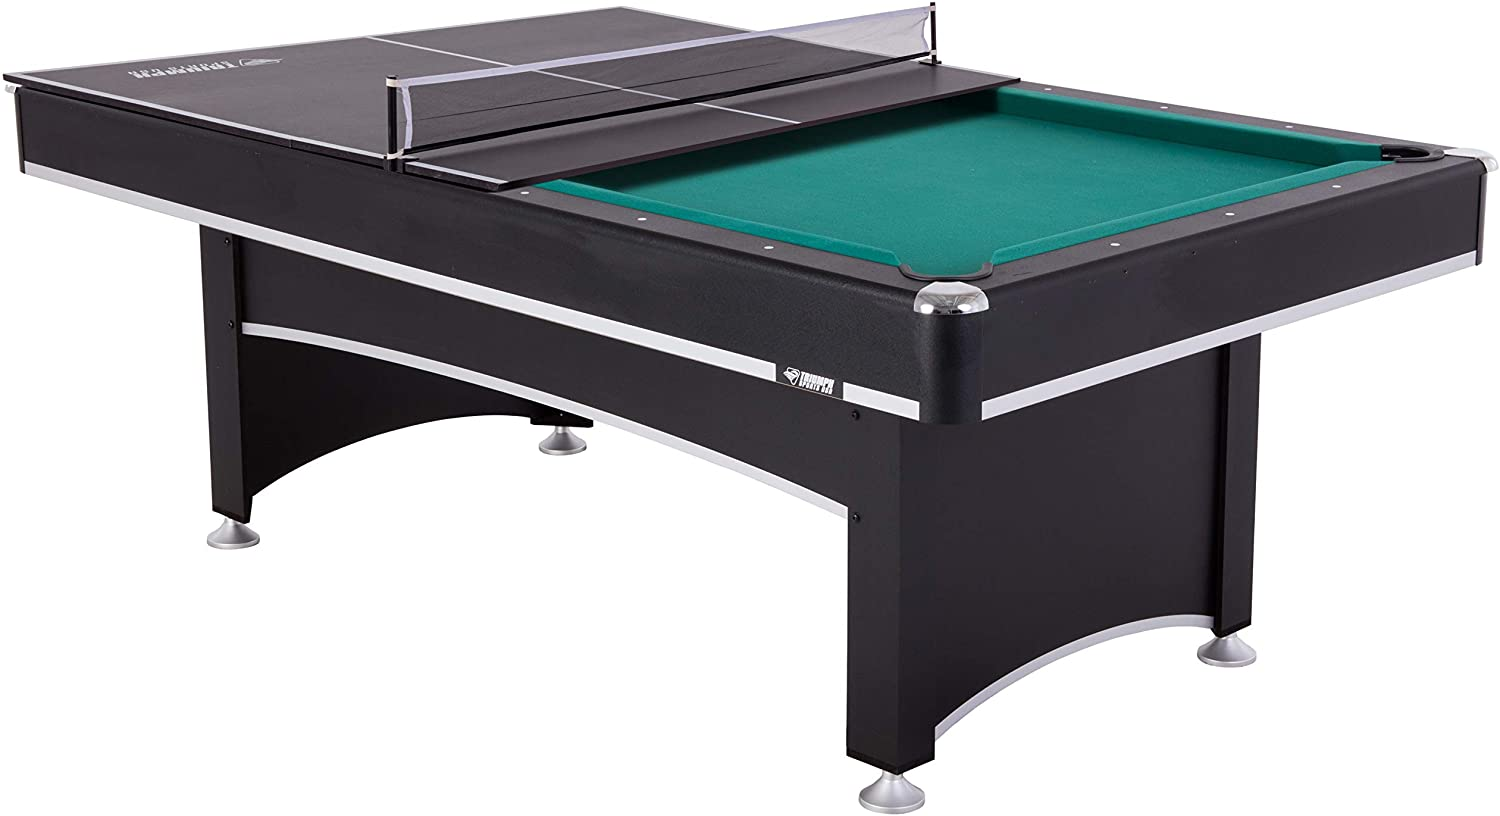 Amazon Com Triumph Phoenix 7 Billiard Table With Table Tennis Conversion Top For A Game Of Pool Or An Action Packed Table Tennis Match Sports Outdoors